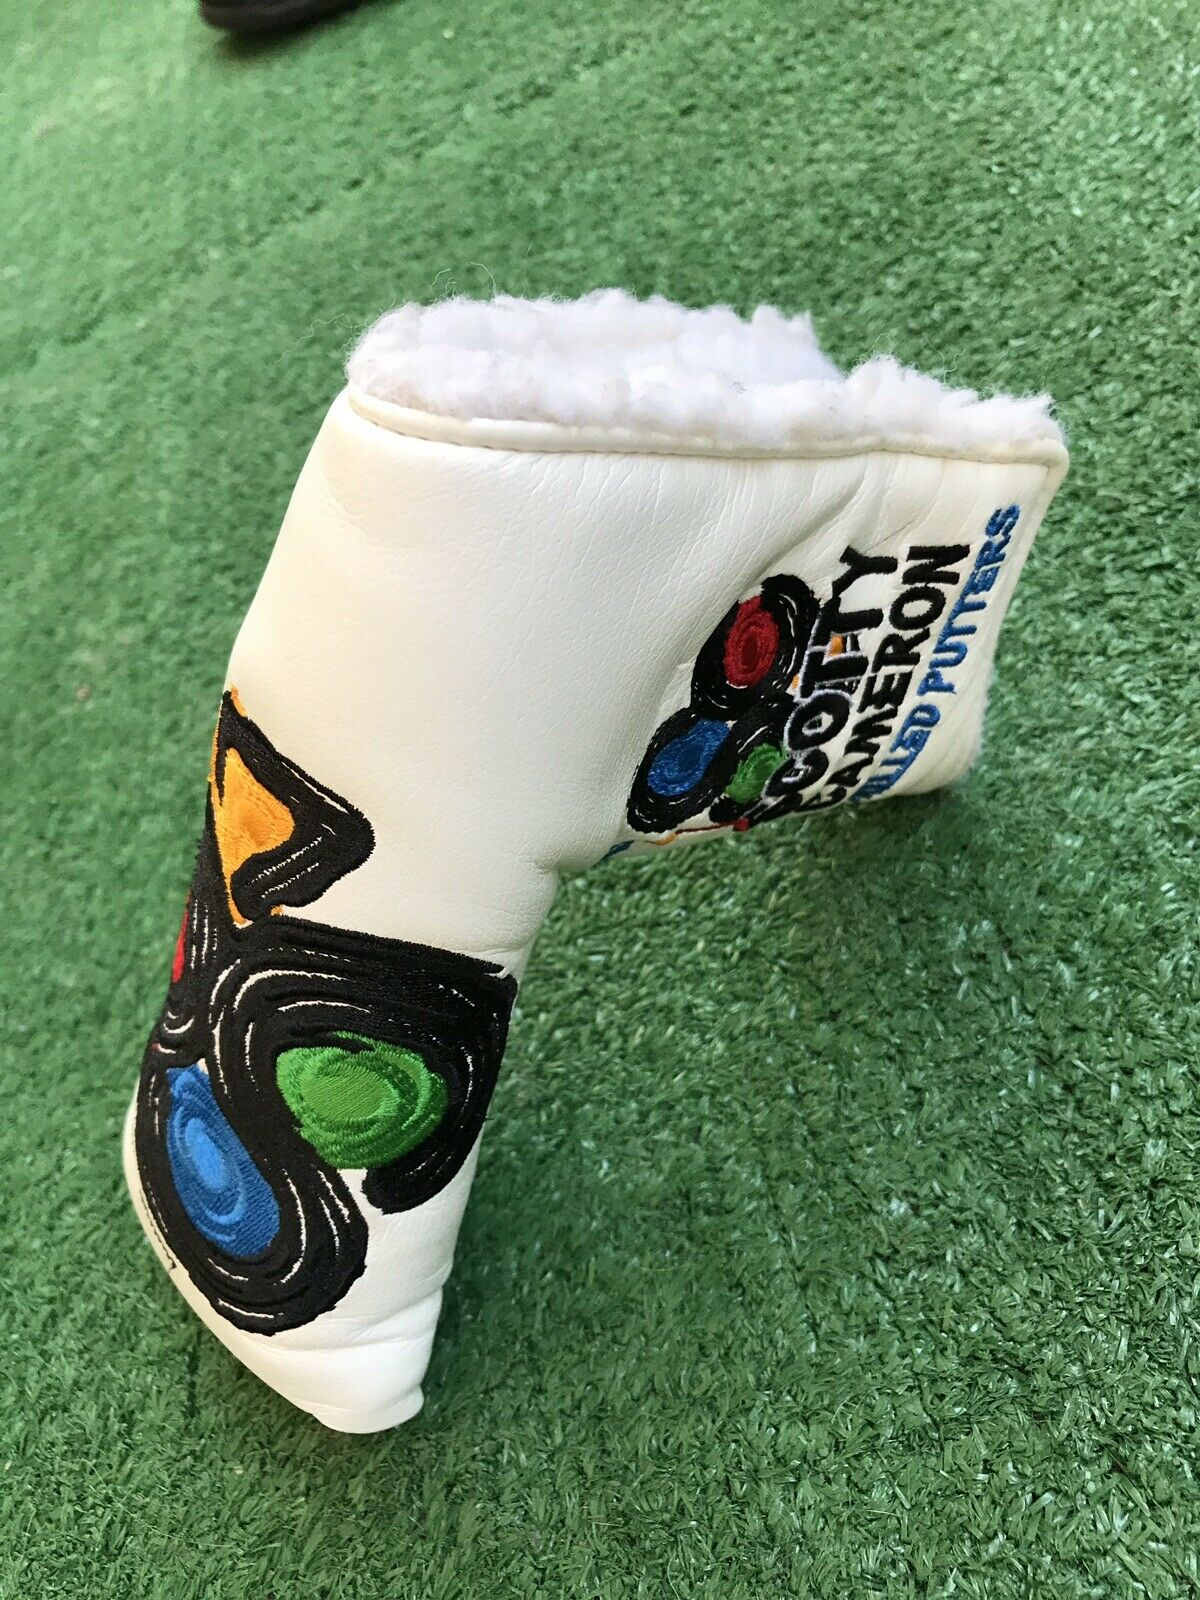 Club Cameron miembro 2010 Titleist Scotty Cameron am&e Hoja putter headcover